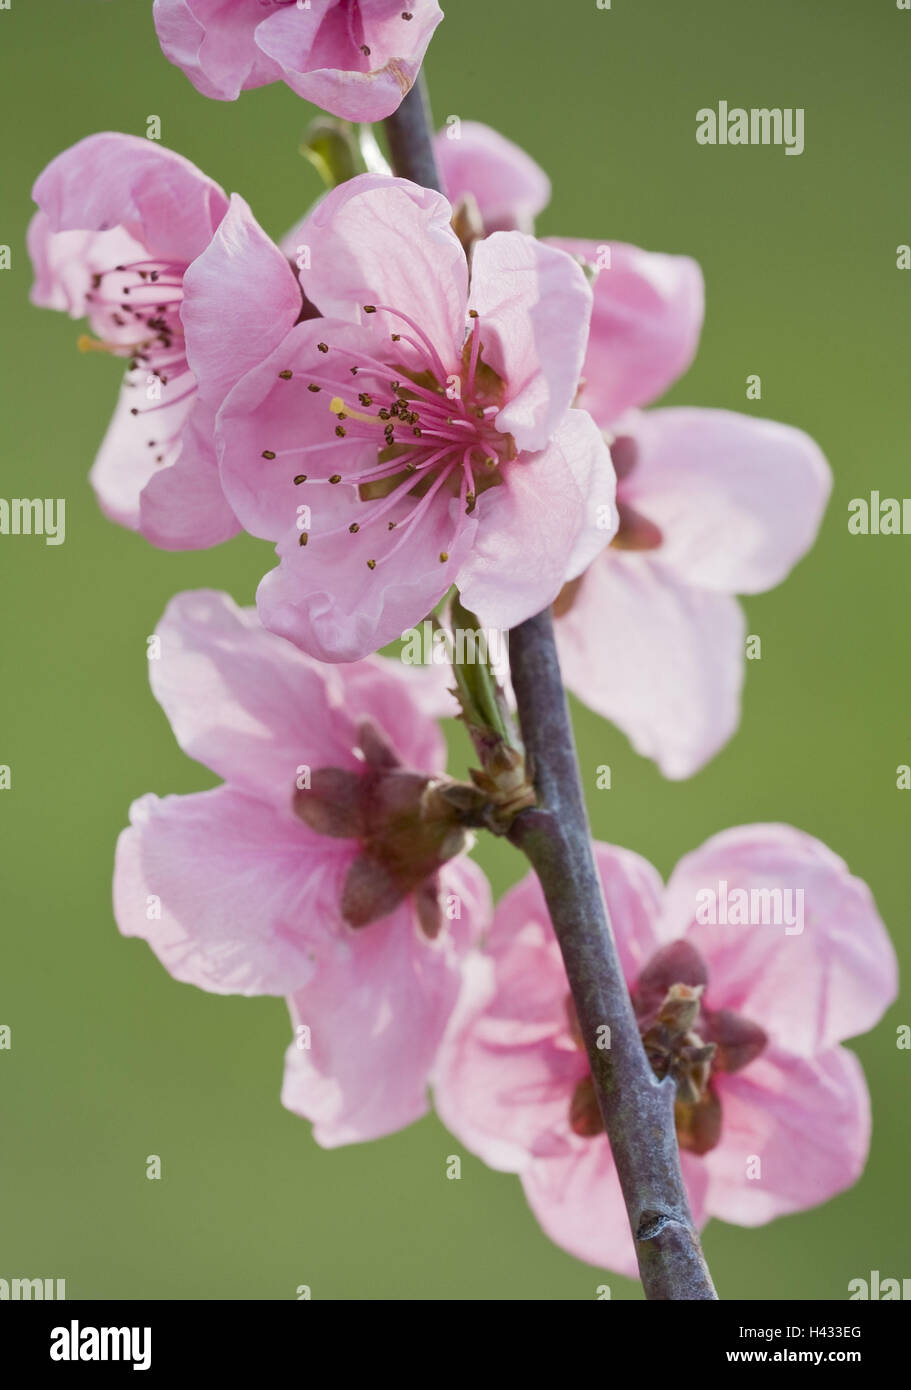 Apricot tree, blossoms, twig, - Stock Image